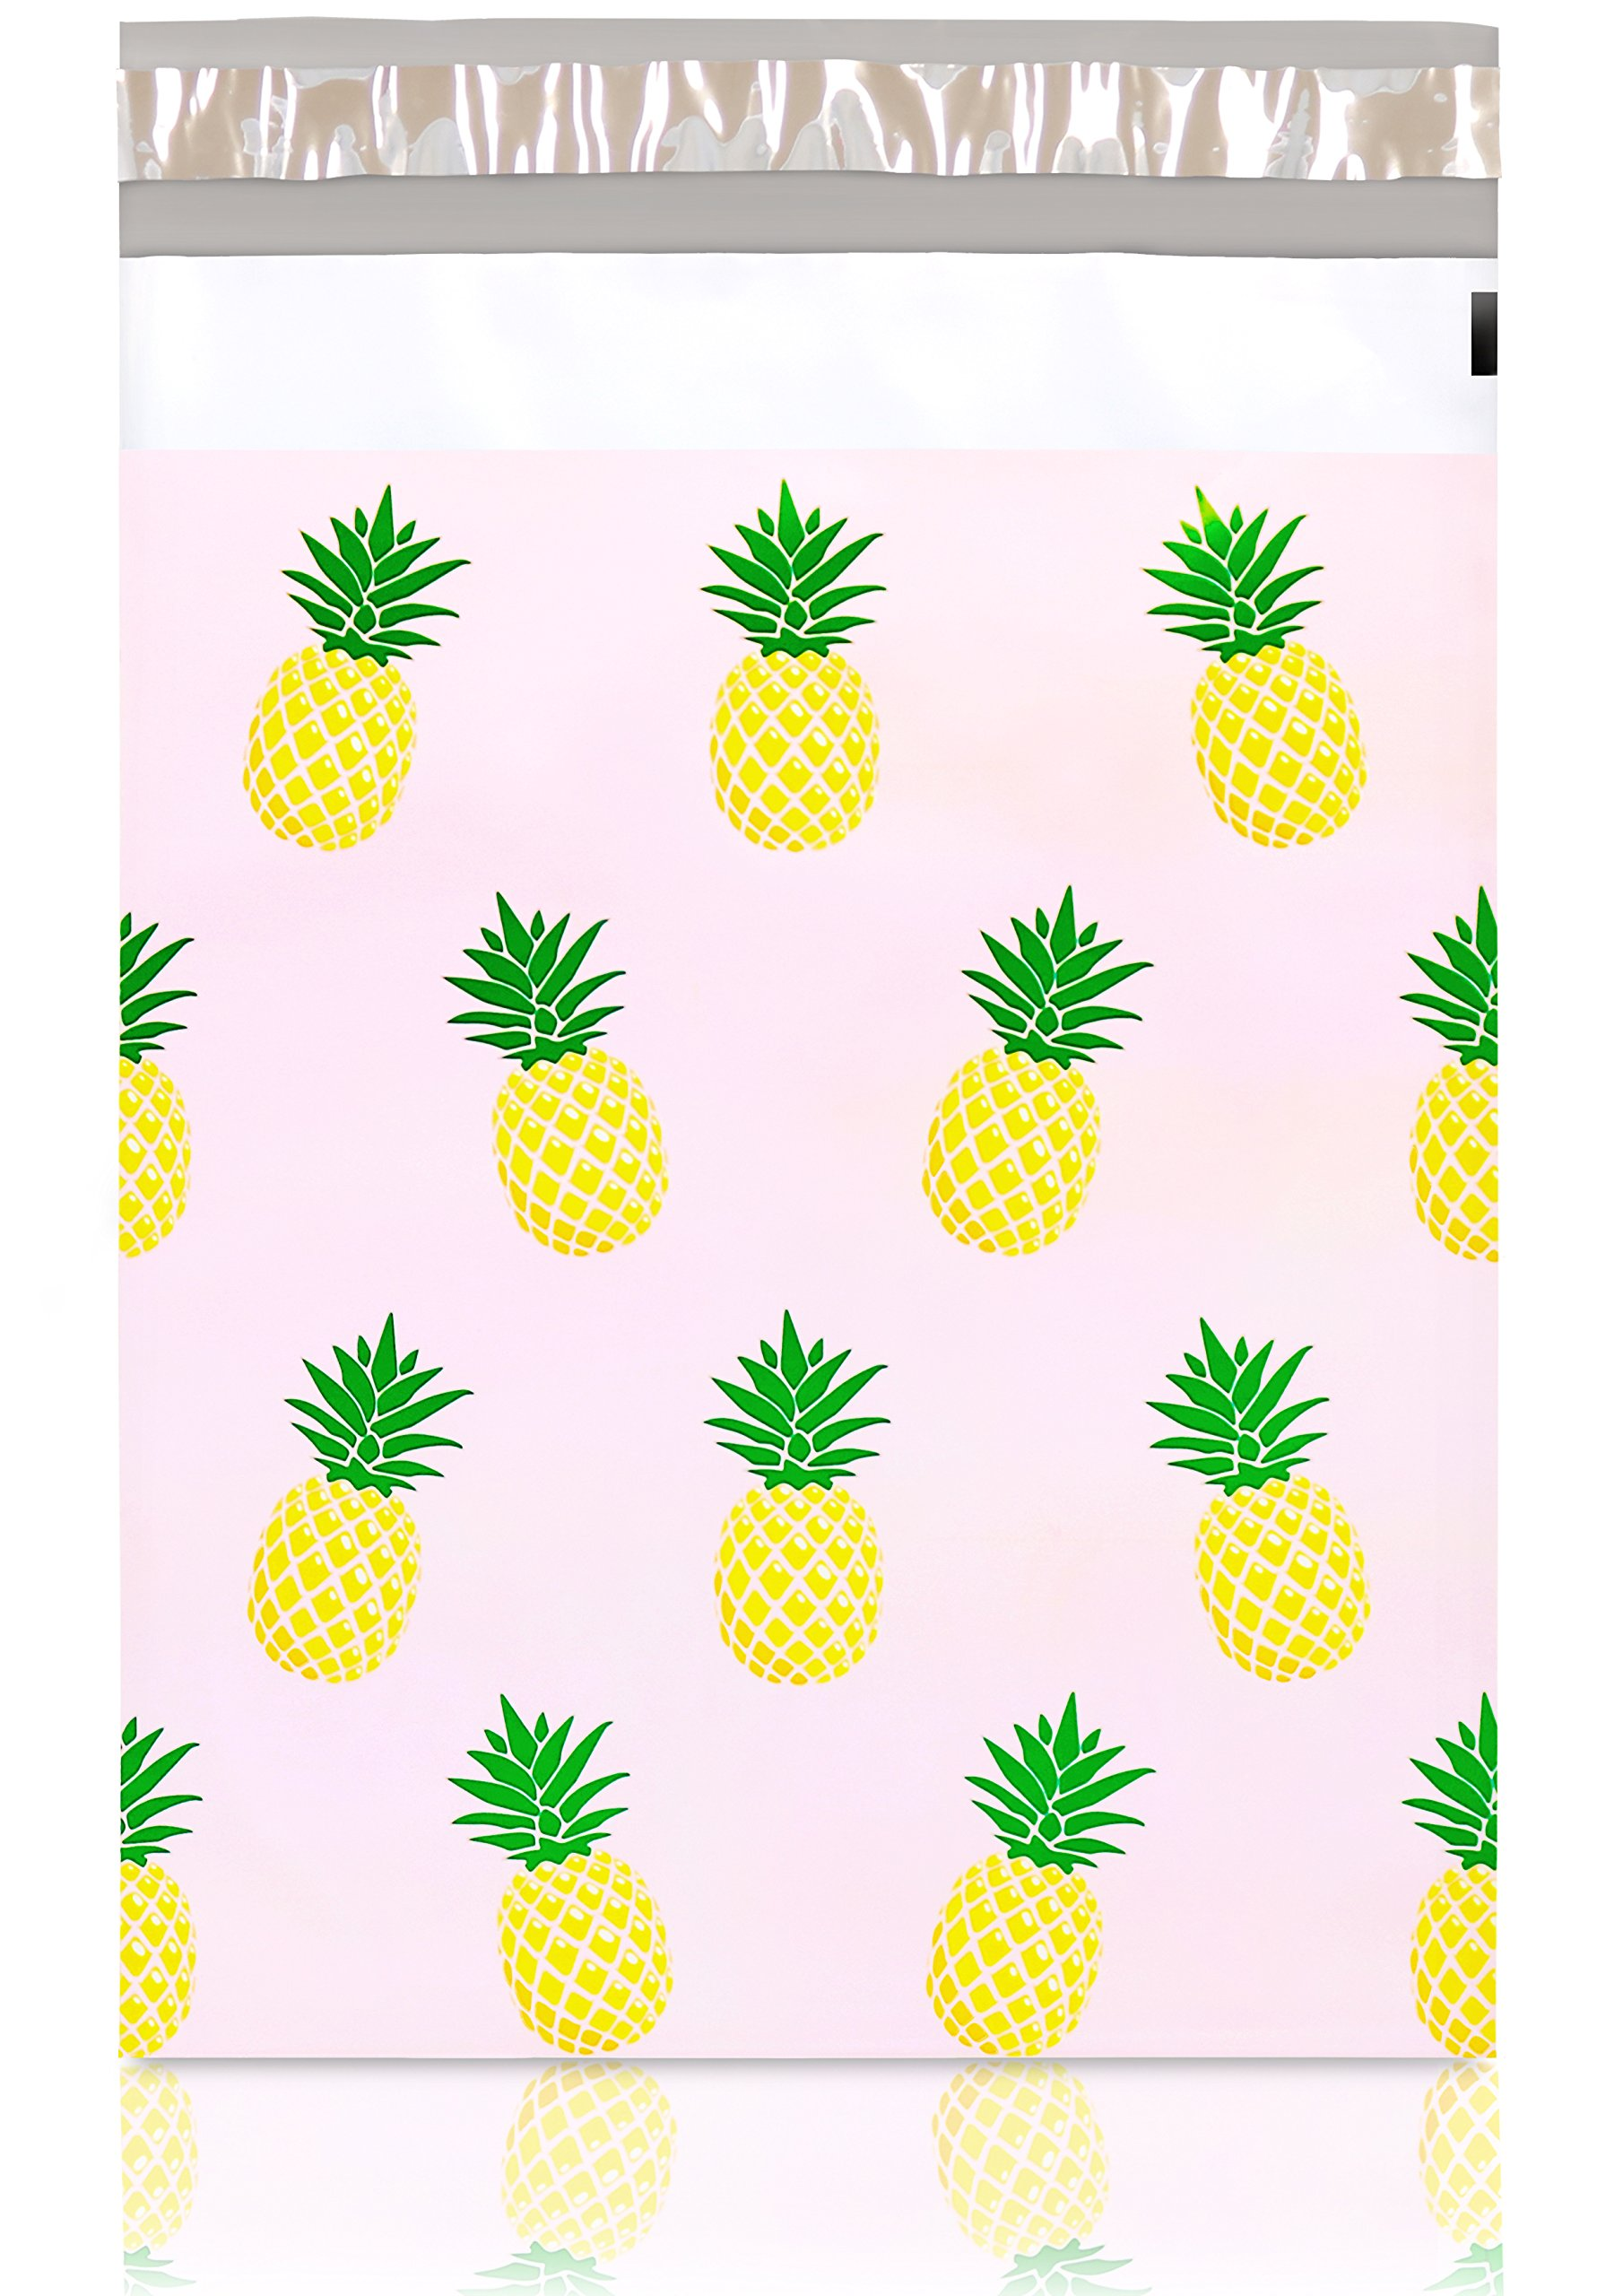 """Pack It Chic - 10"""" X 13"""" (100 Pack) Pink Pineapple Poly Mailer Envelope Plastic Custom Mailing & Shipping Bags - Self Seal (More Designs Available)"""